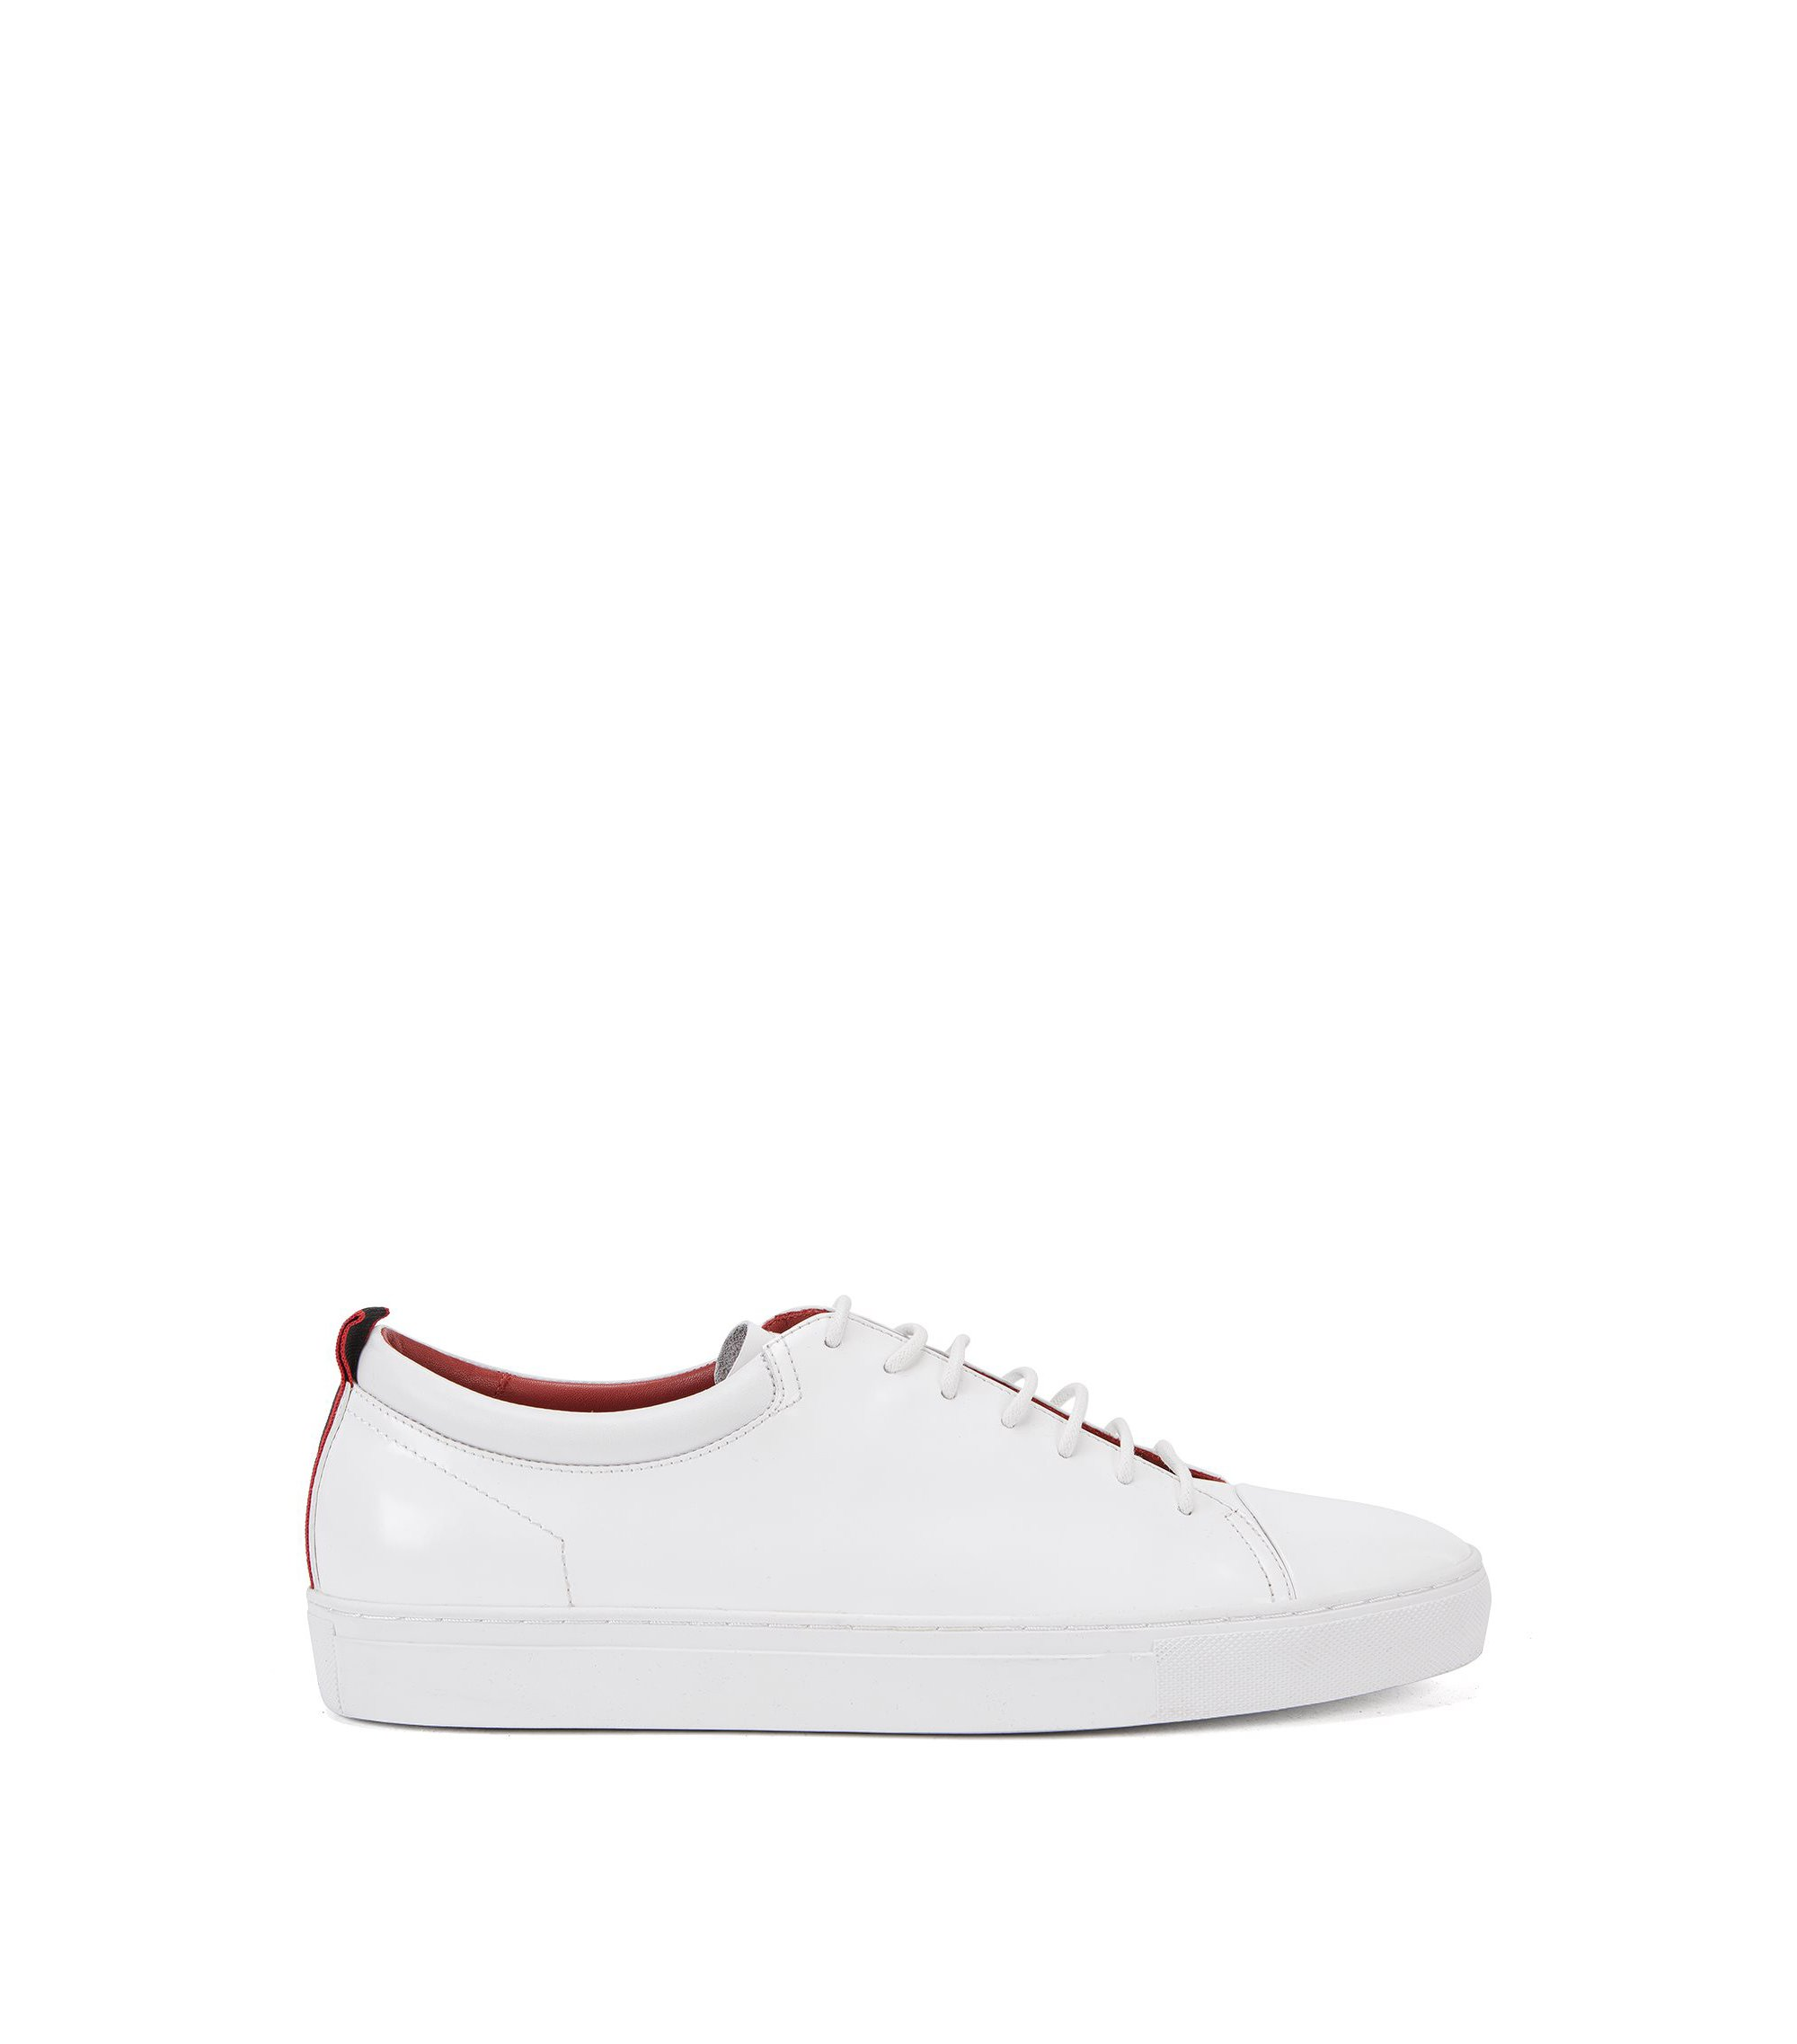 Leather trainers with contrast tape detail, White